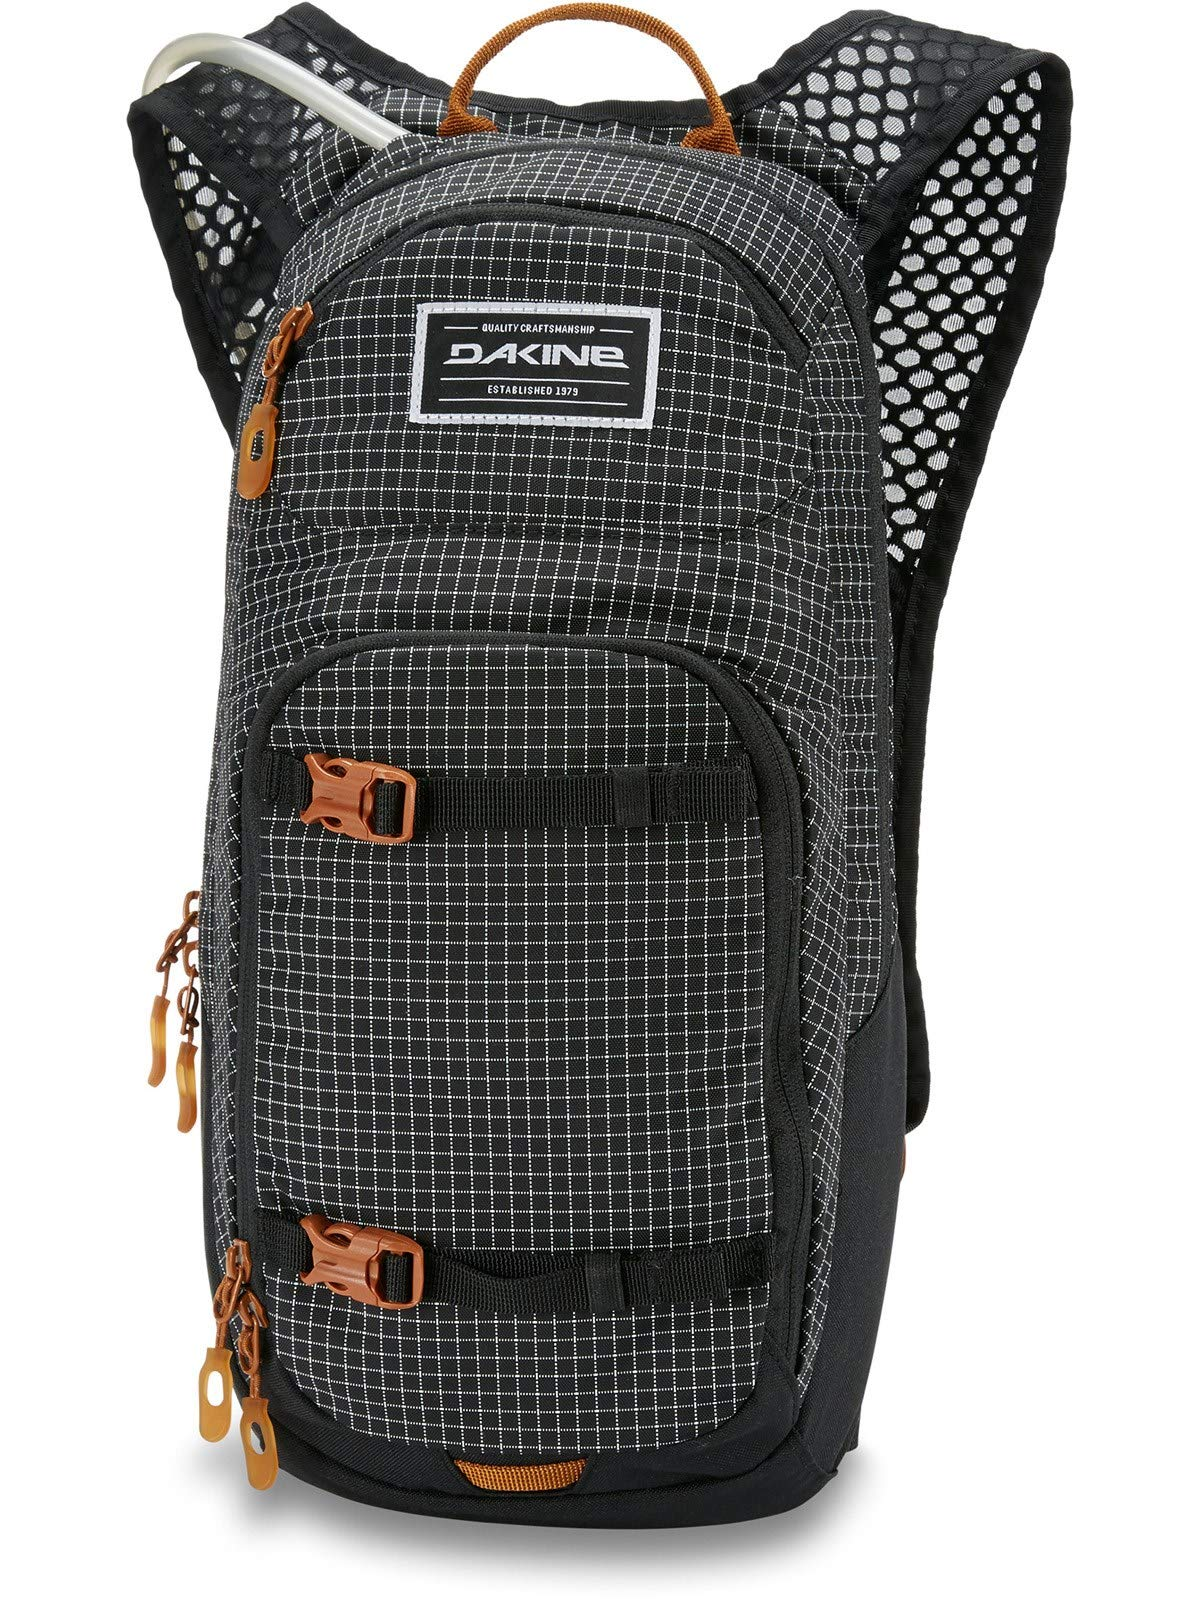 Dakine Men's Session 8L Bike Hydration Backpack, Rincon, One Size by Dakine (Image #1)